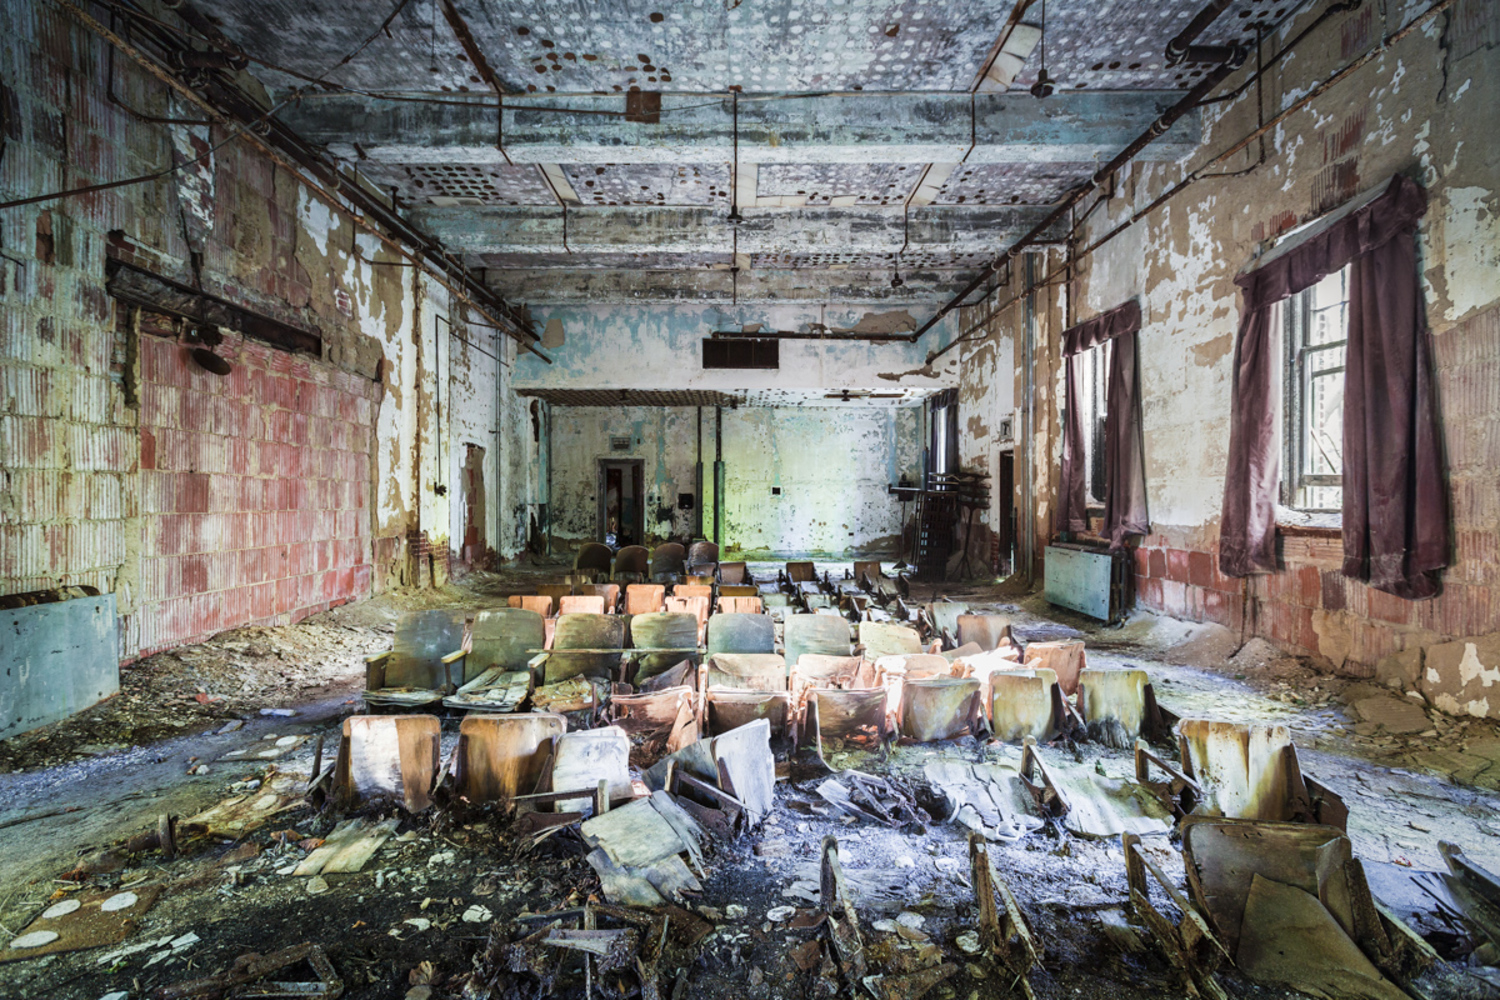 North Brother Island in bronx was the site of a historic hospital for contagious diseases. Today, it's designated as a wildlife preserve by the Parks department after being abandoned for half a century.